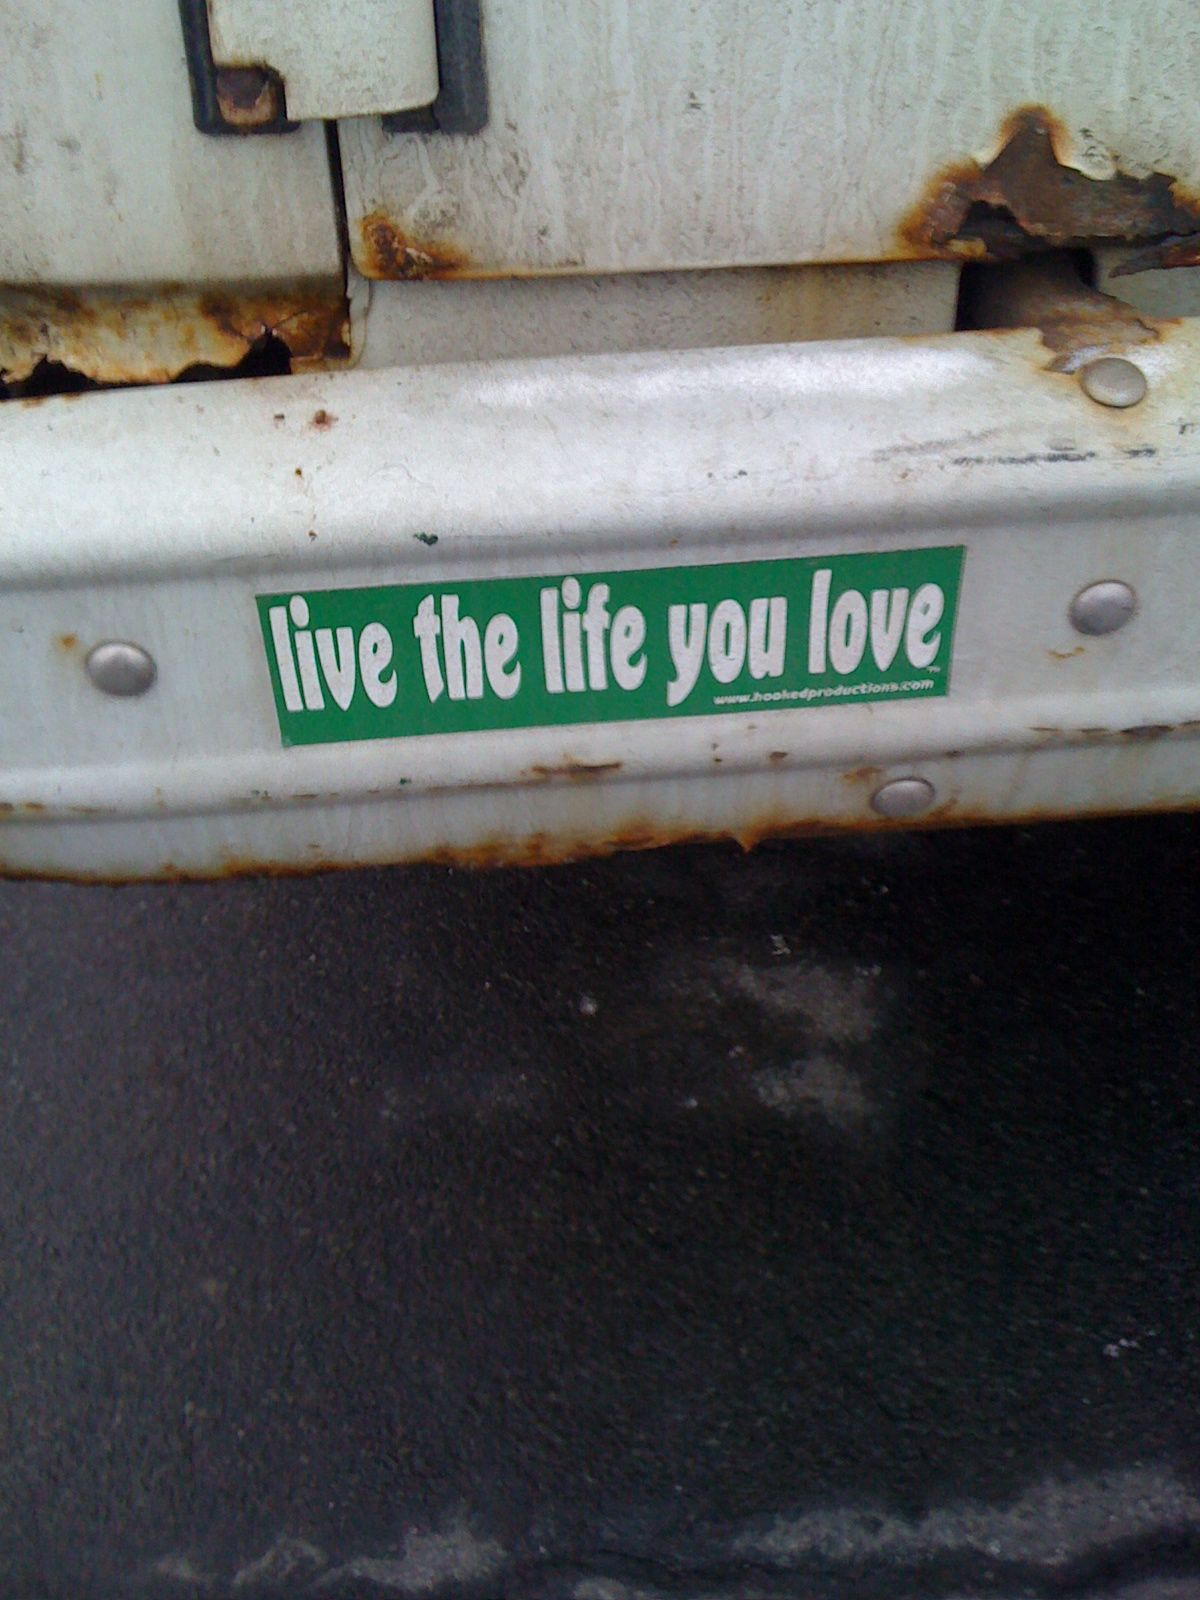 Live the life you love funny bumper stickers car stickers some inspirational quotes